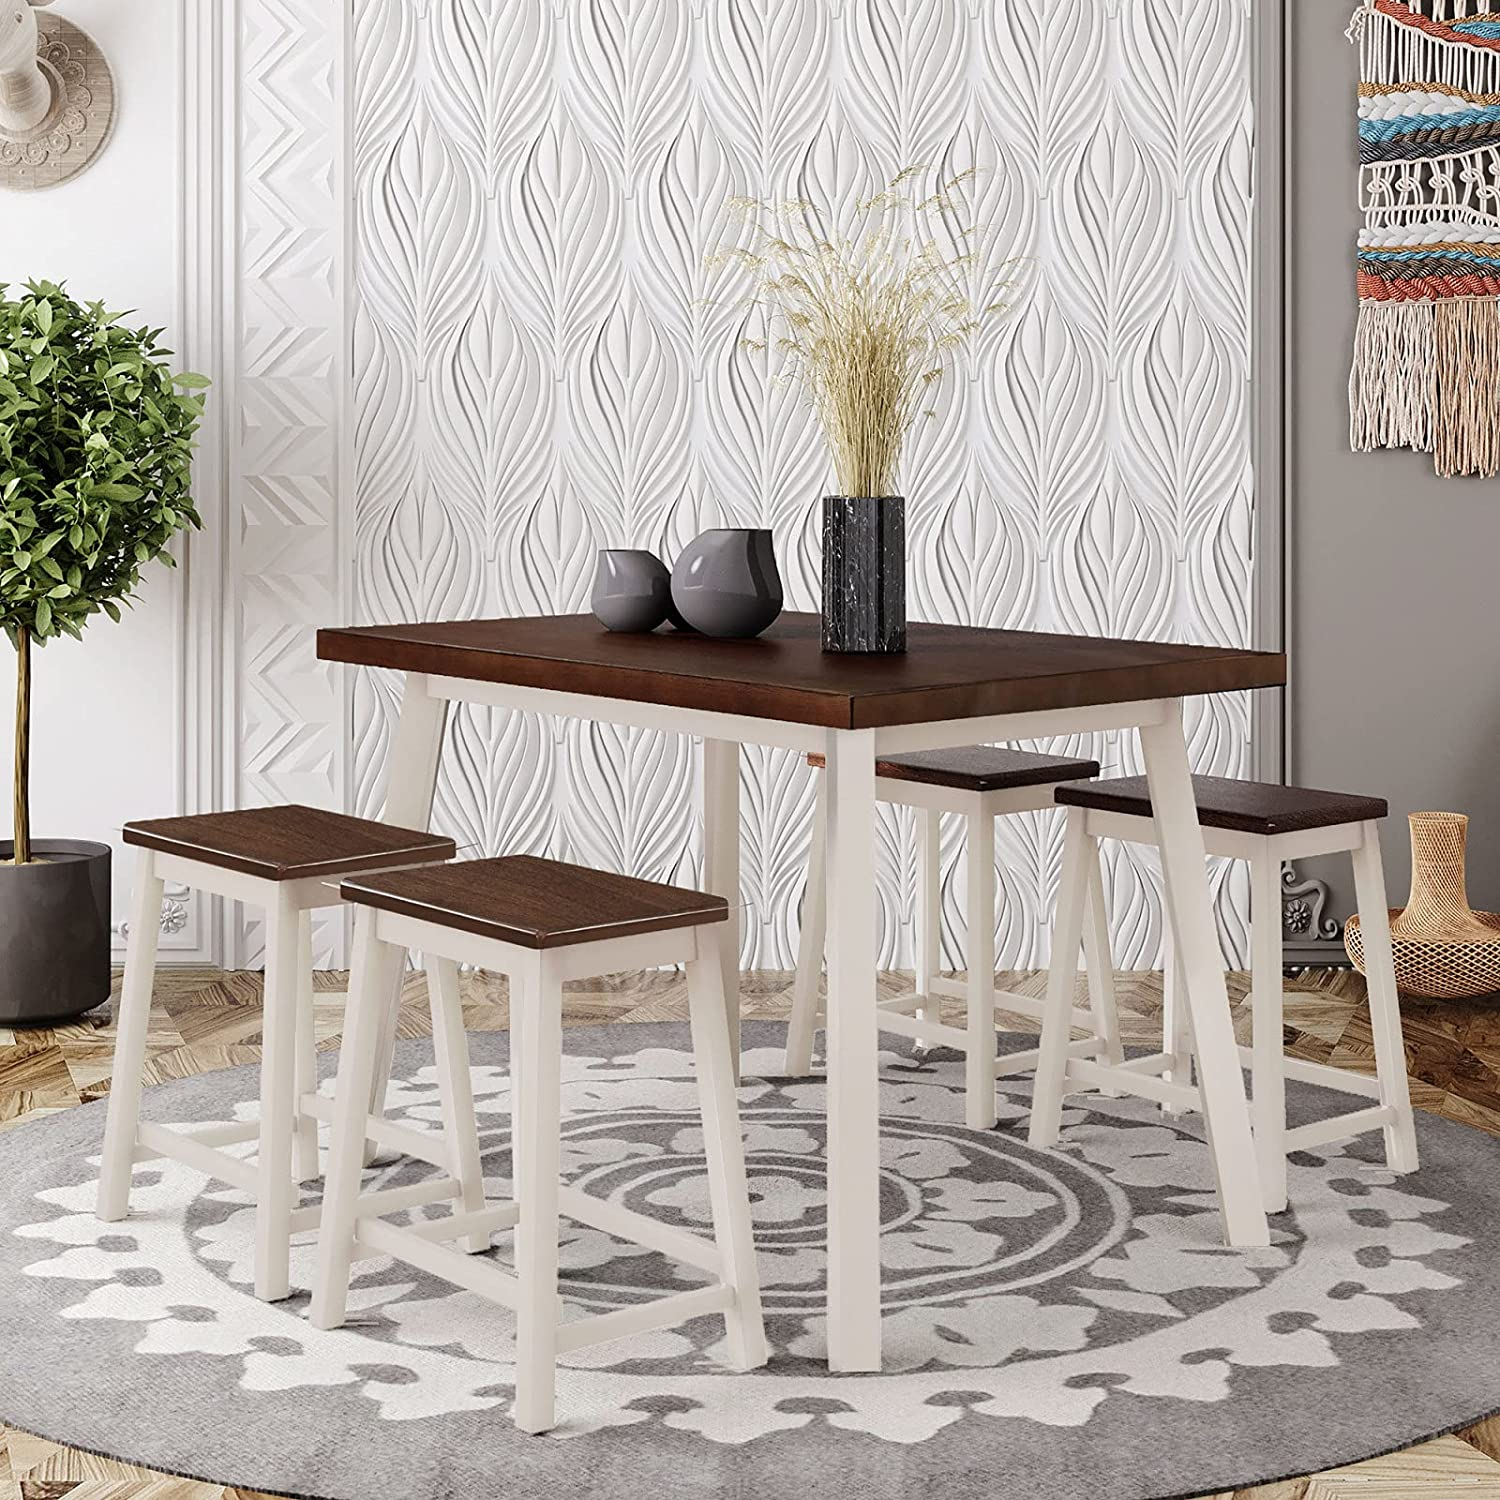 5 Pcs Dining Table Detroit Mall Set Modern Stools Bar Rust with 4 Max 45% OFF